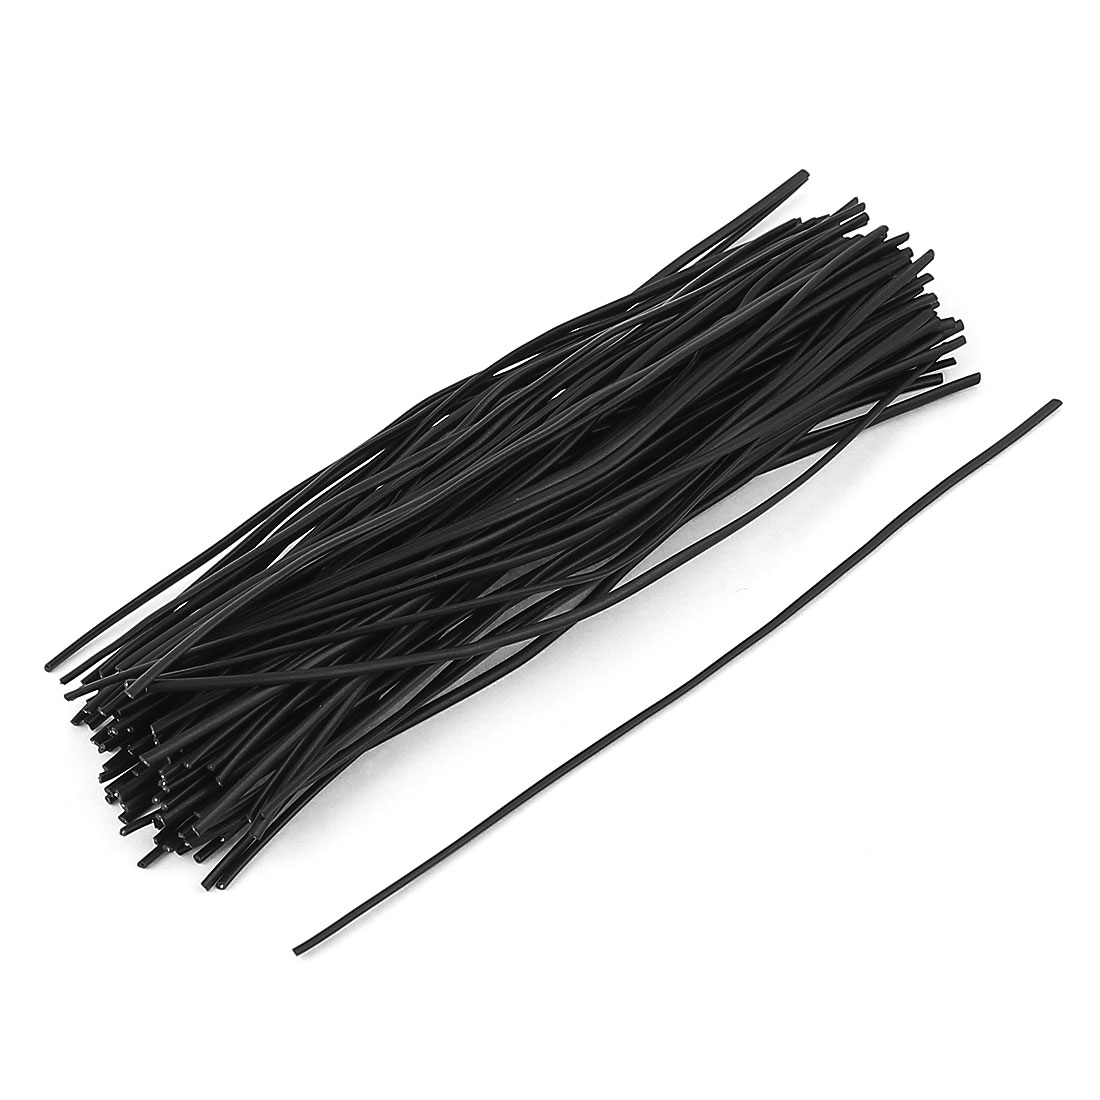 100 Pcs Plastic Shell Package Reusable Twist Ties Cable Wires Fasteners Black 150mm Long